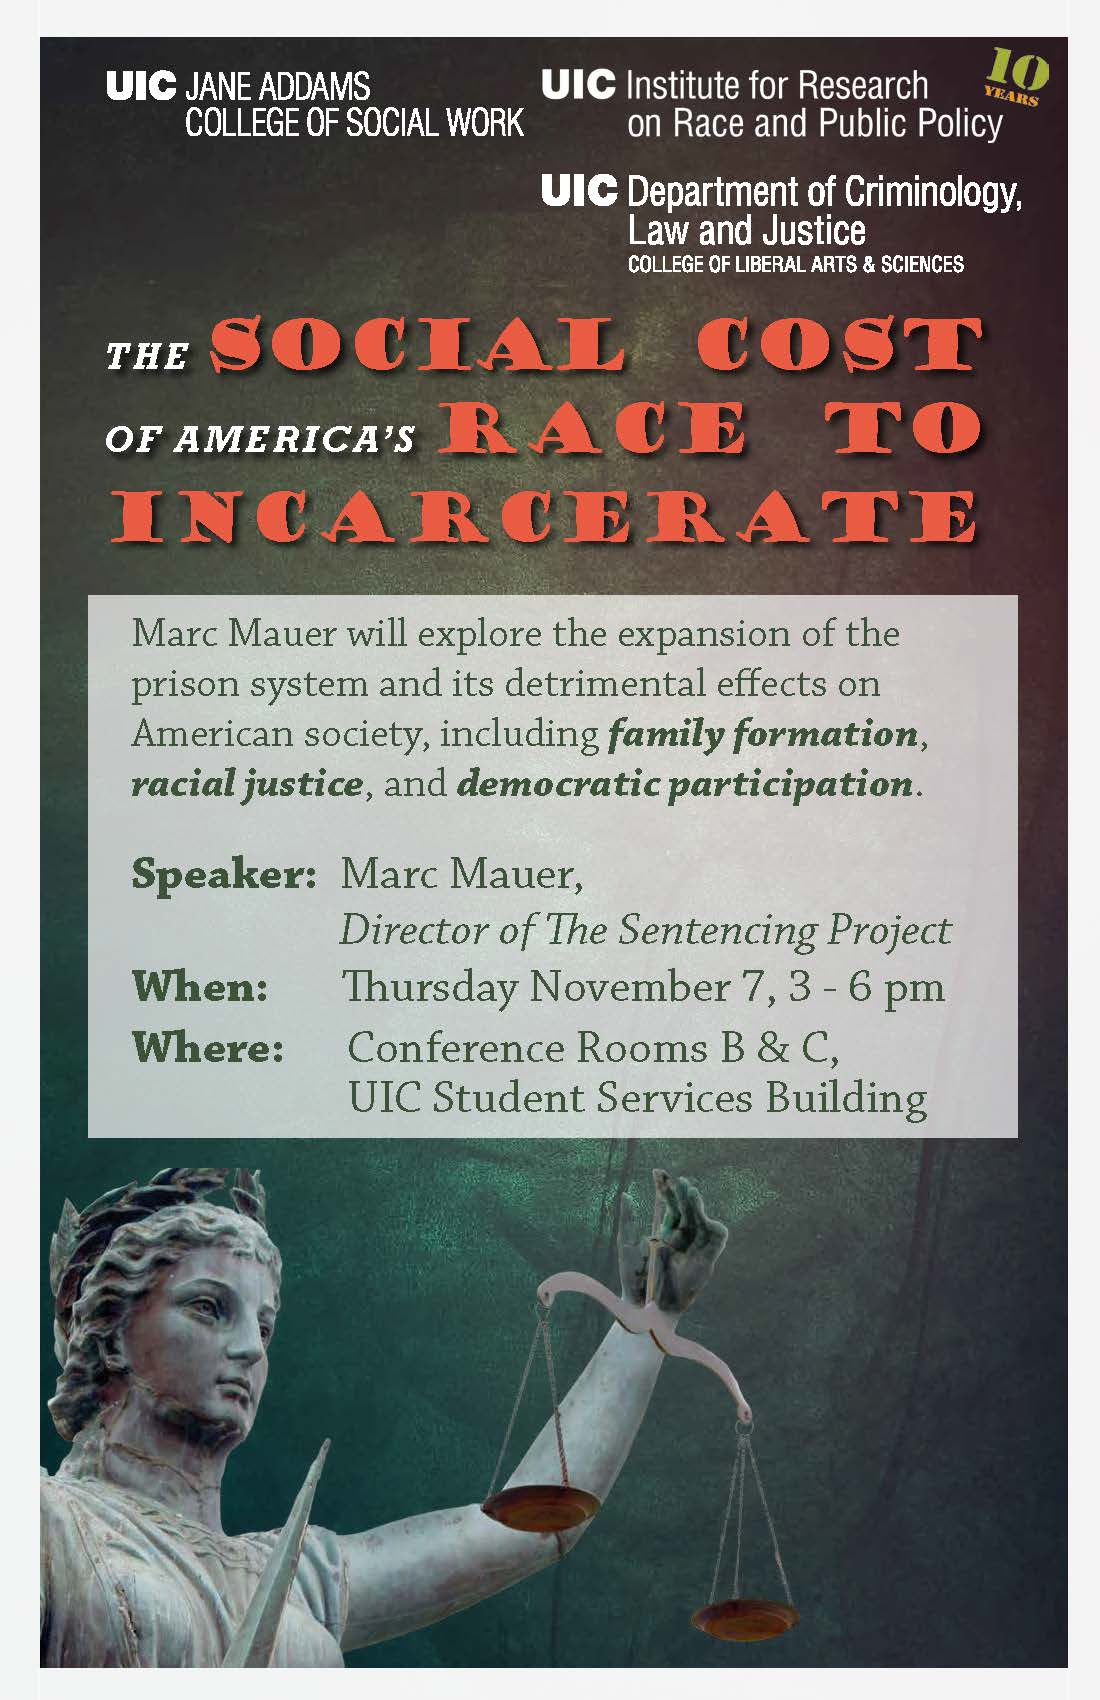 Event Poster for The Social Cost of America's Race to Incarcerate